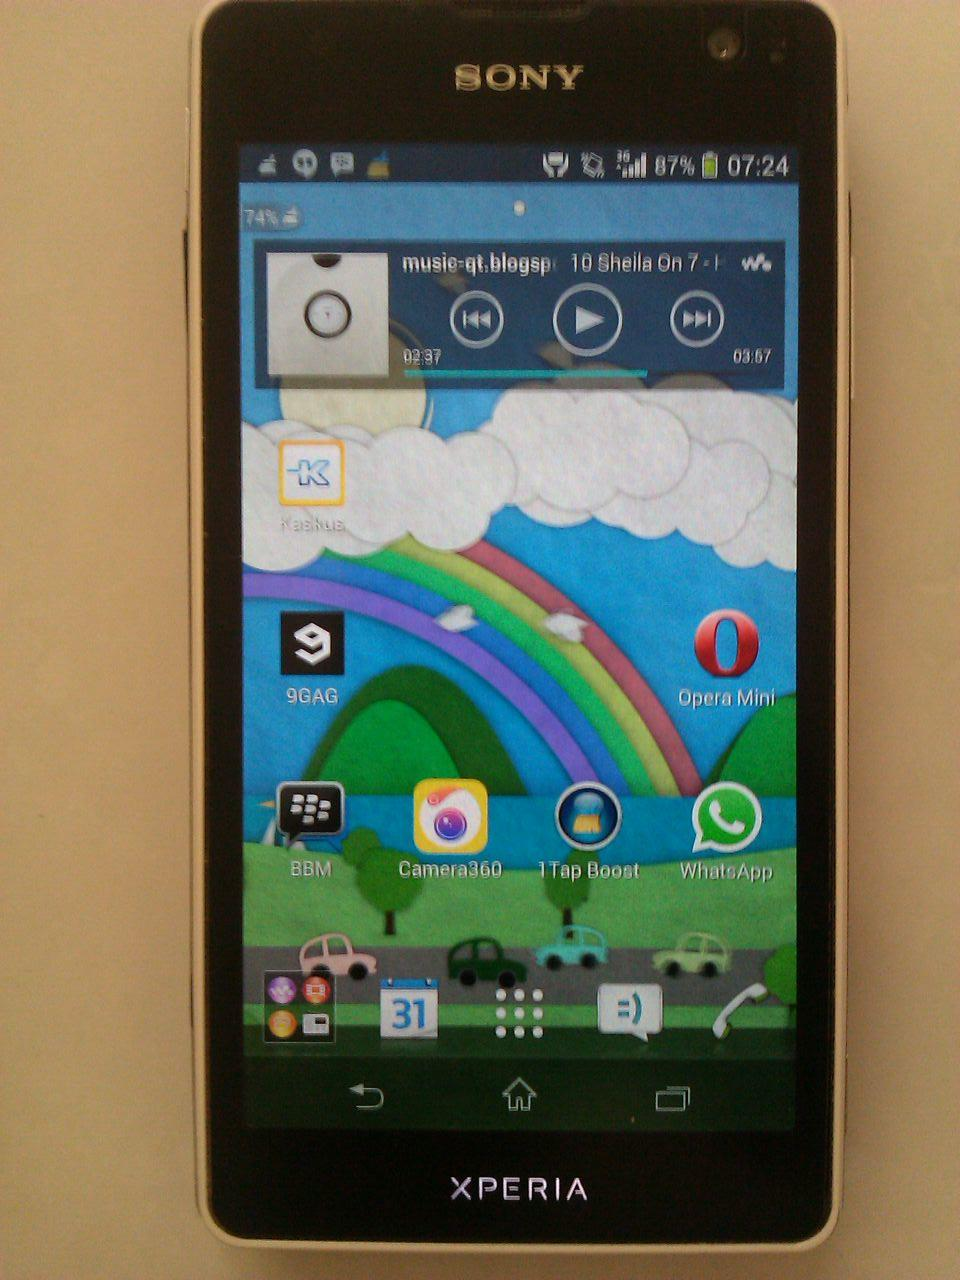 WTS Sony Xperia TX, HTC Wildfire S, Asus Nexus 7 32gb 3G, Samsung Wave